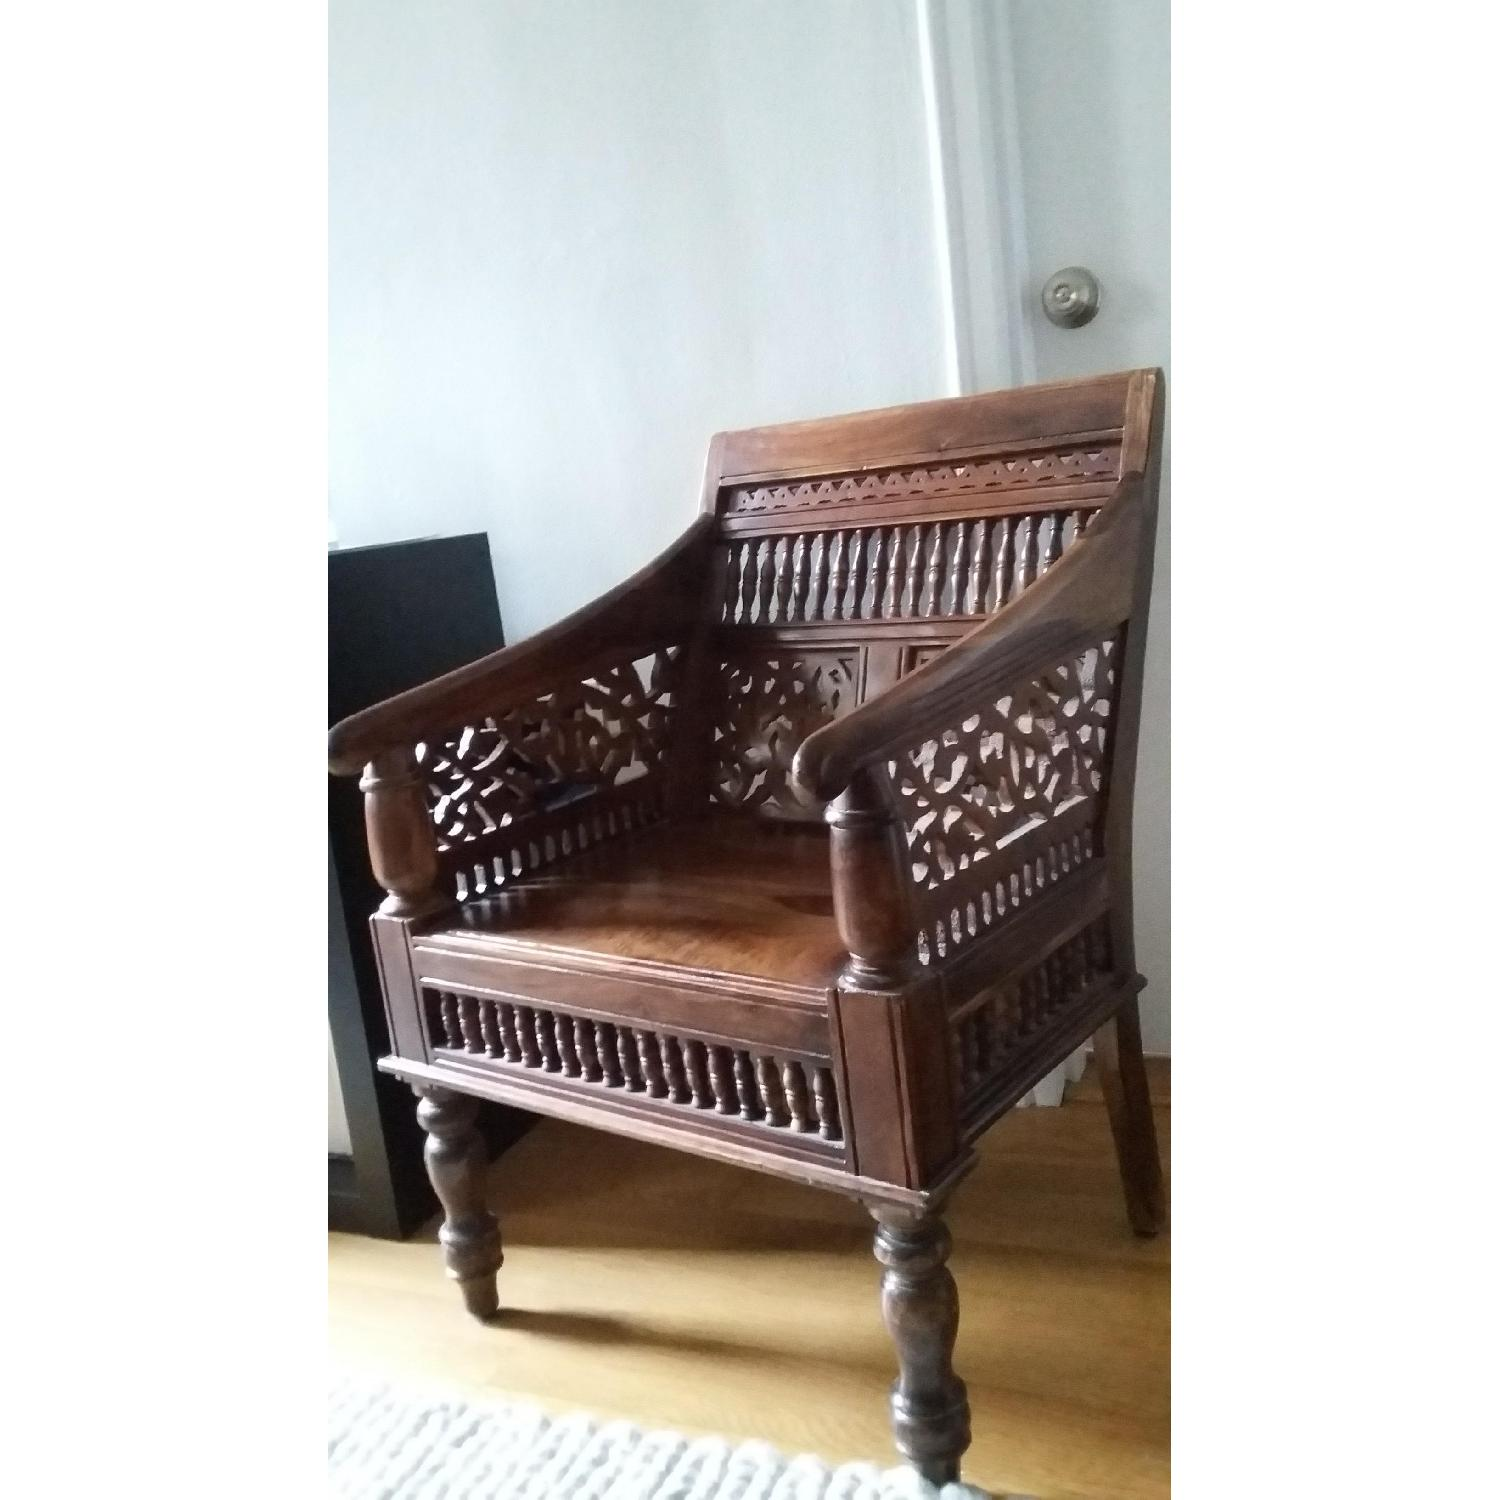 Home Decorator's Collection Hand Carved Rajasthan Wooden Chair - image-1